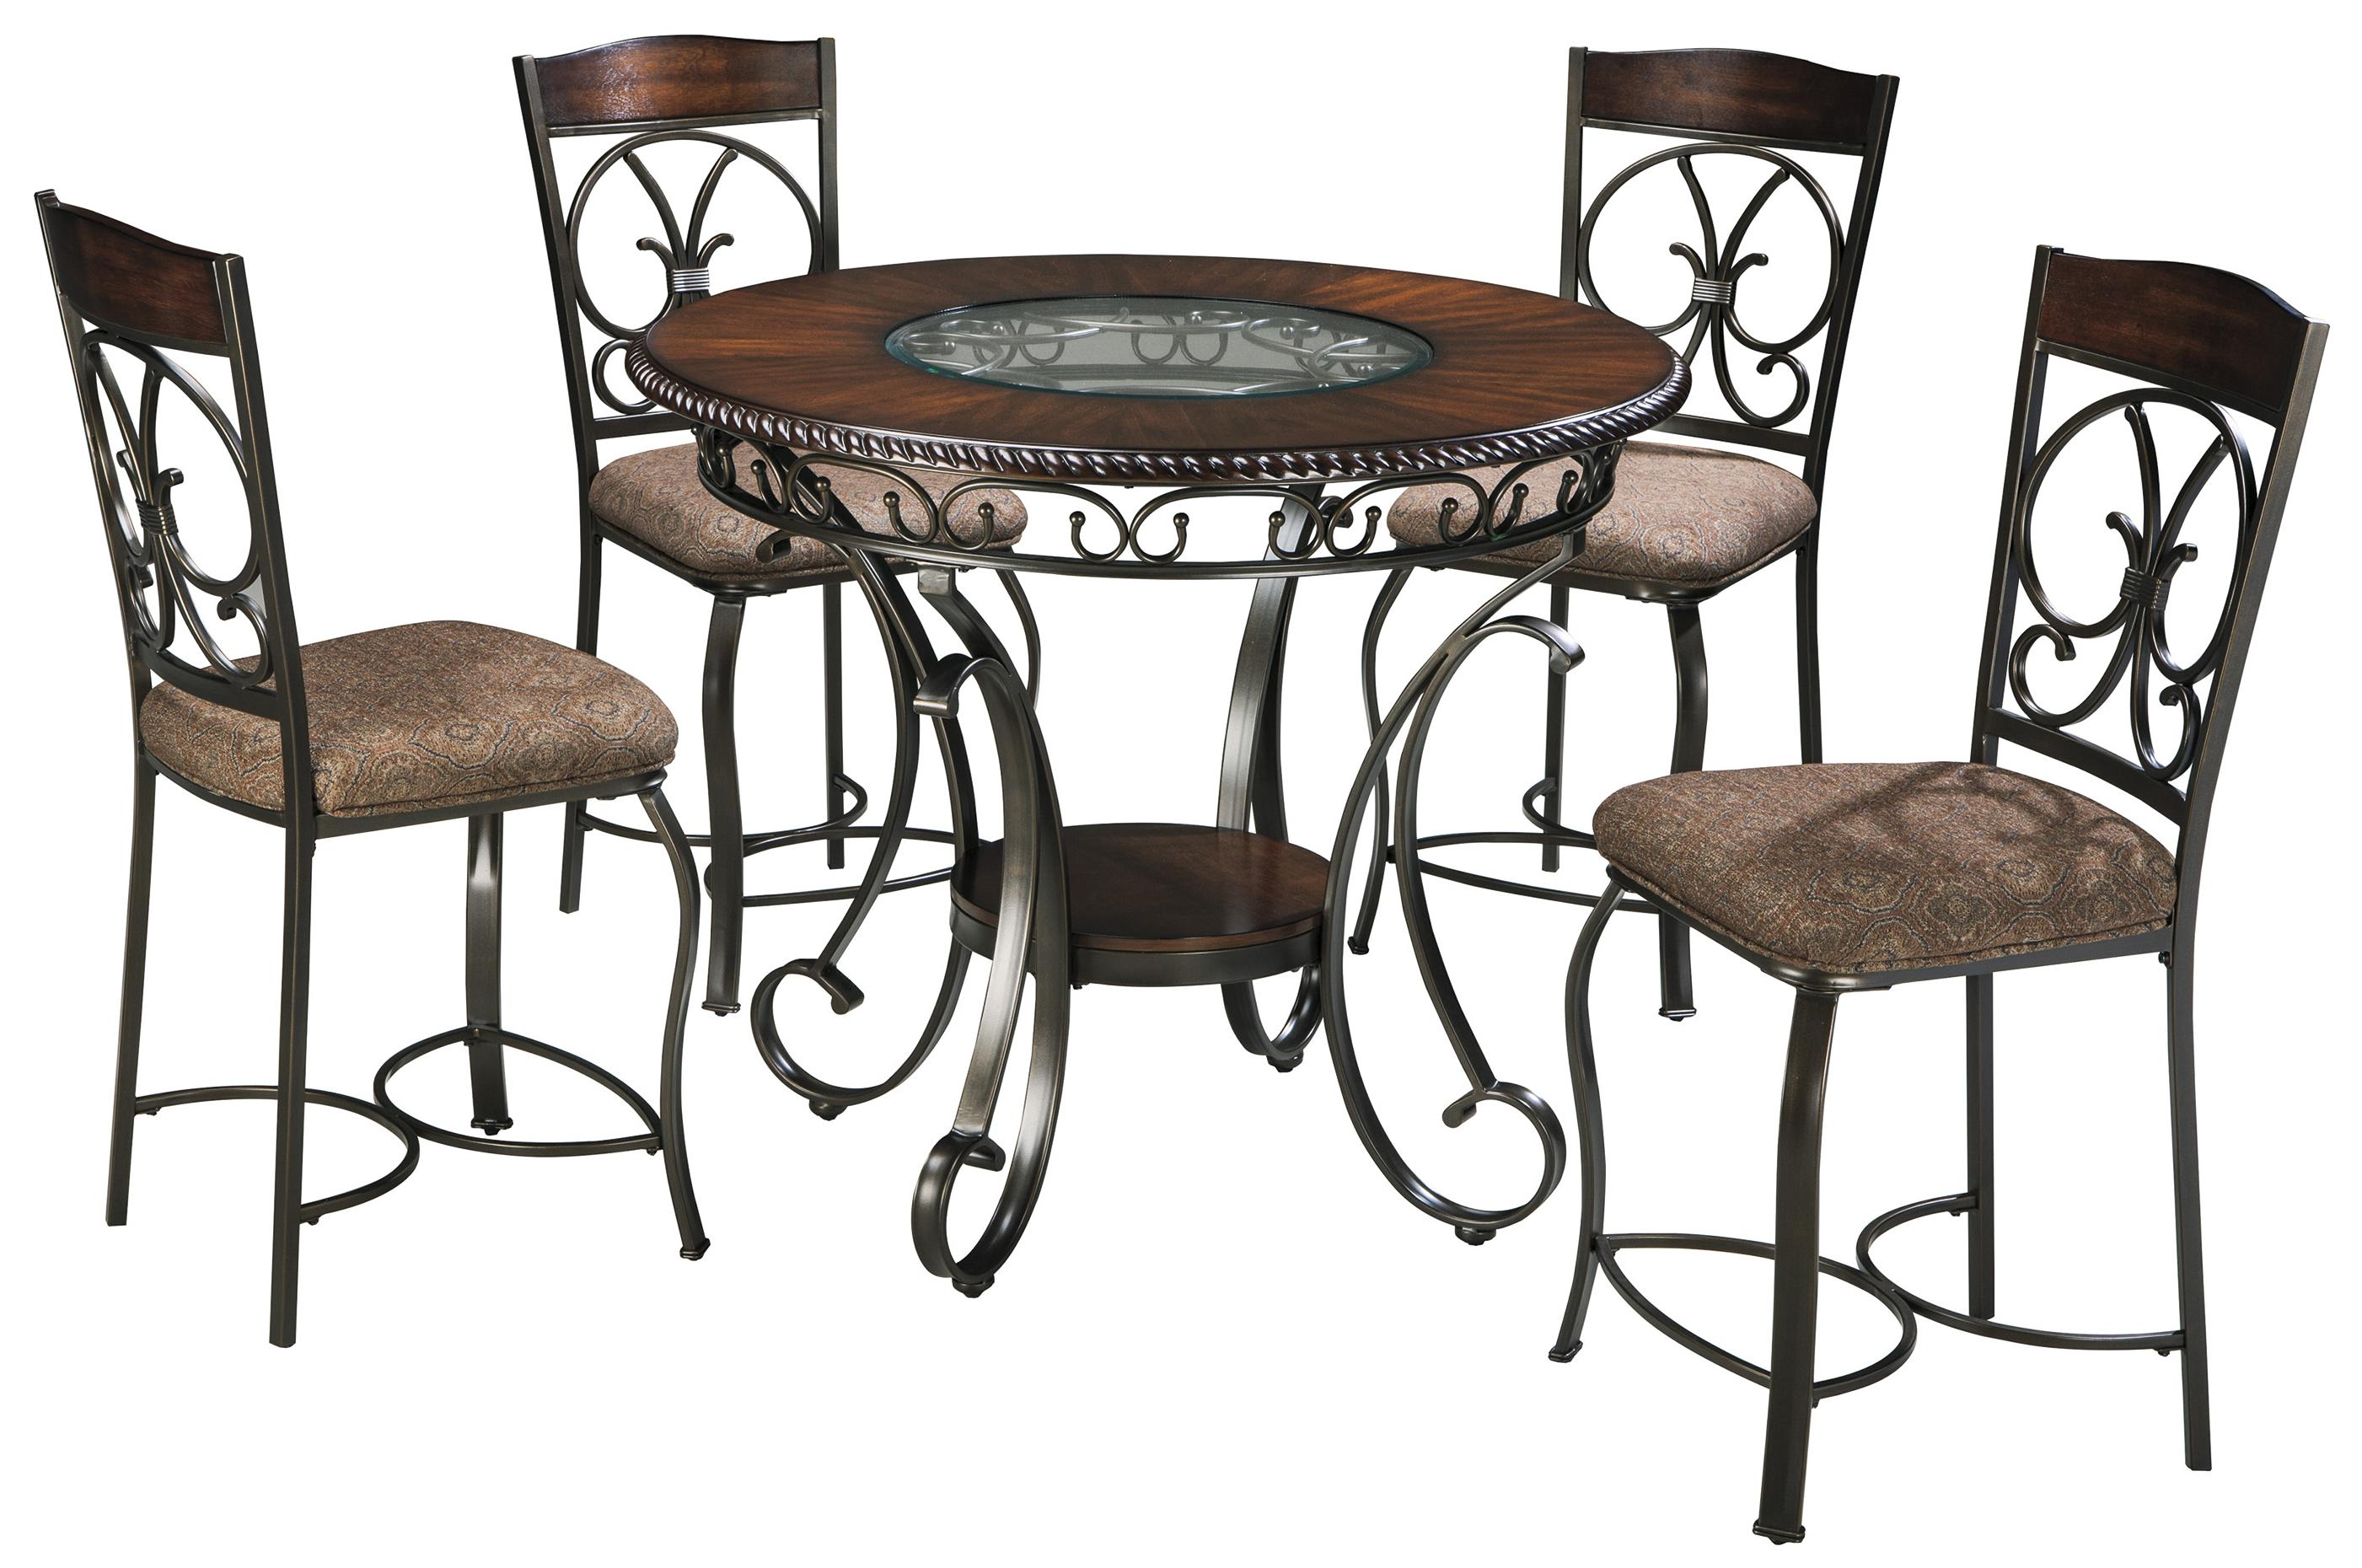 signature design ashley glambrey round counter table and products color dining room accent furniture barstool set moroccan patio coffee with umbrella hole folding for small space